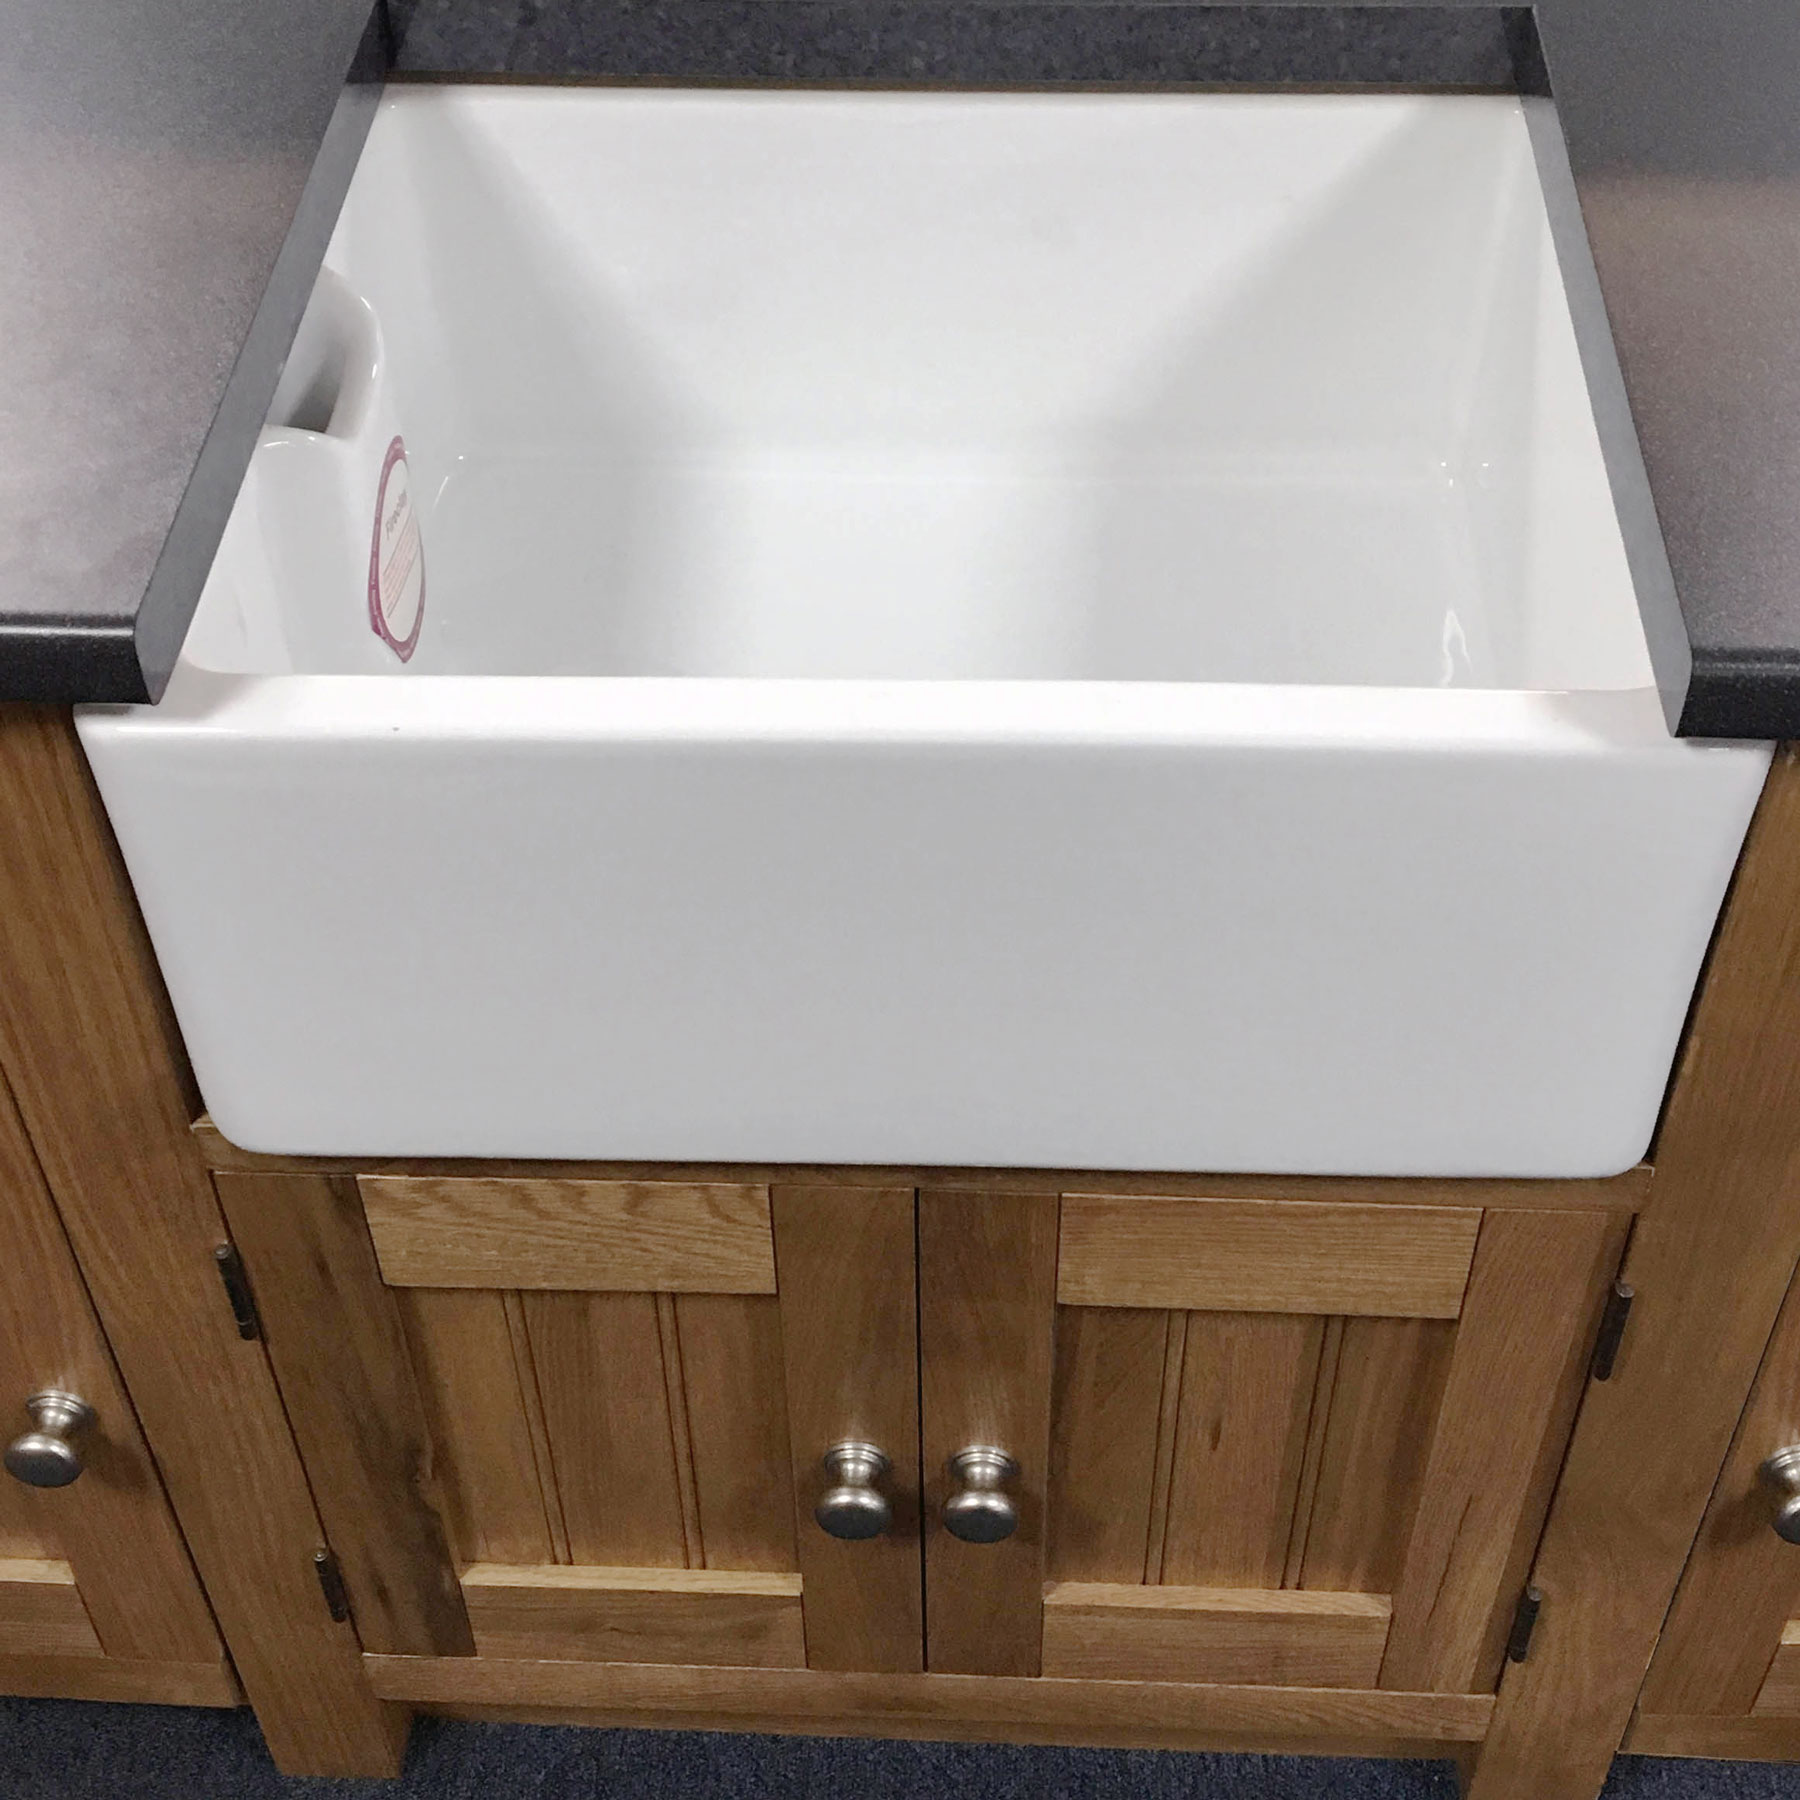 Ceramic Kitchen Sink Rak 600 Belfast Butler Gourmet Reversible Ceramic Kitchen